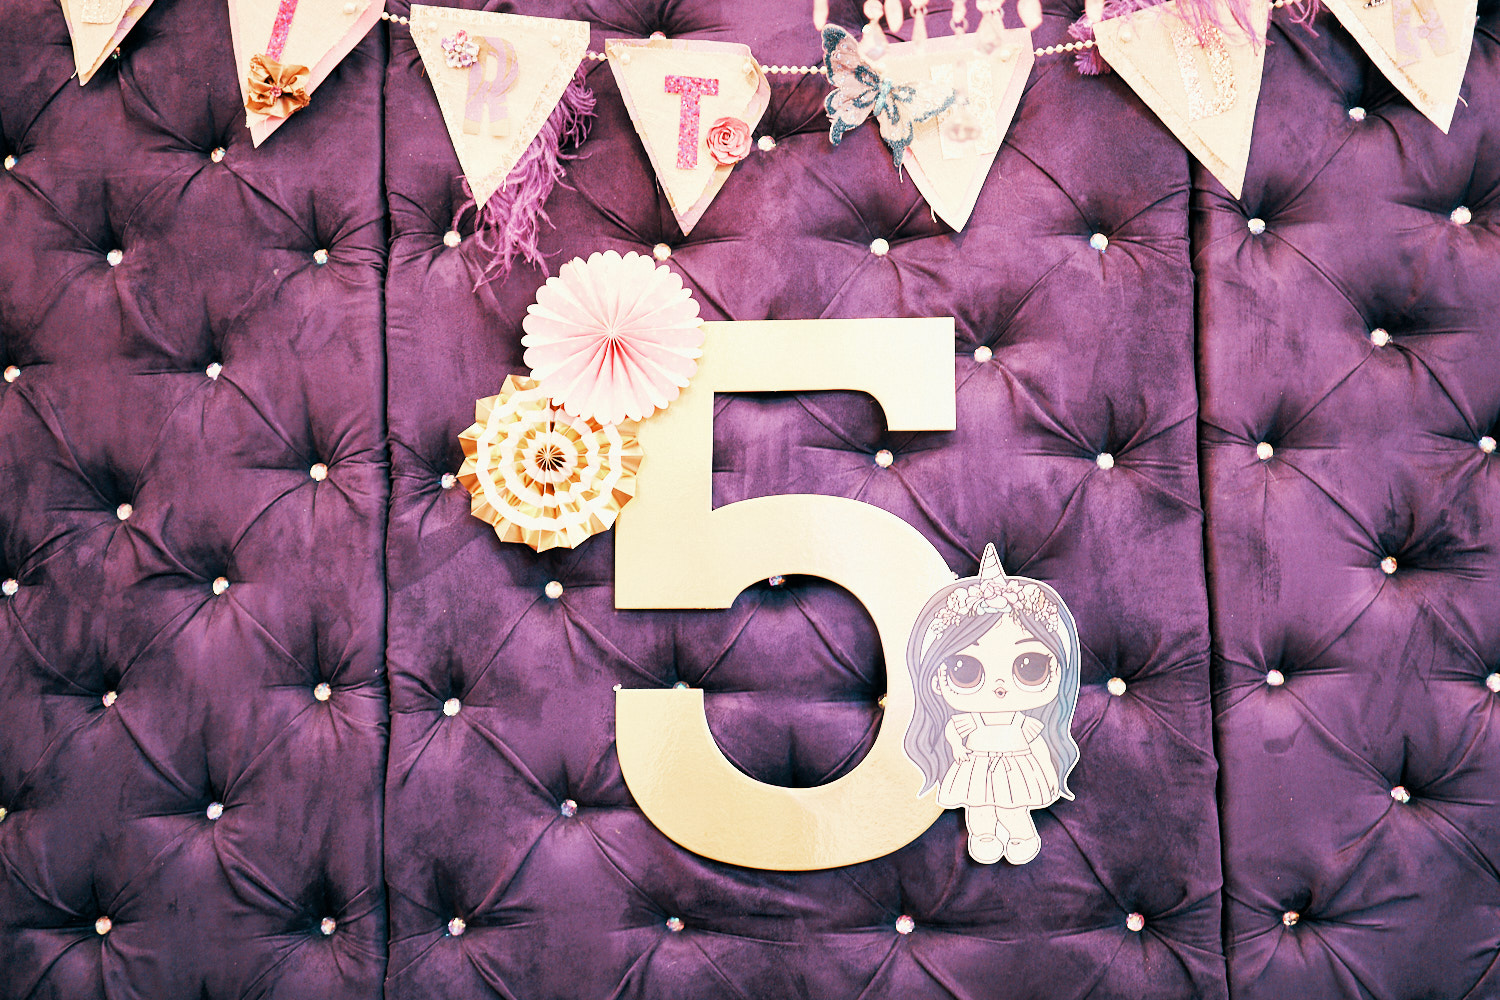 5th Birthday party signage with lol dolls decor.